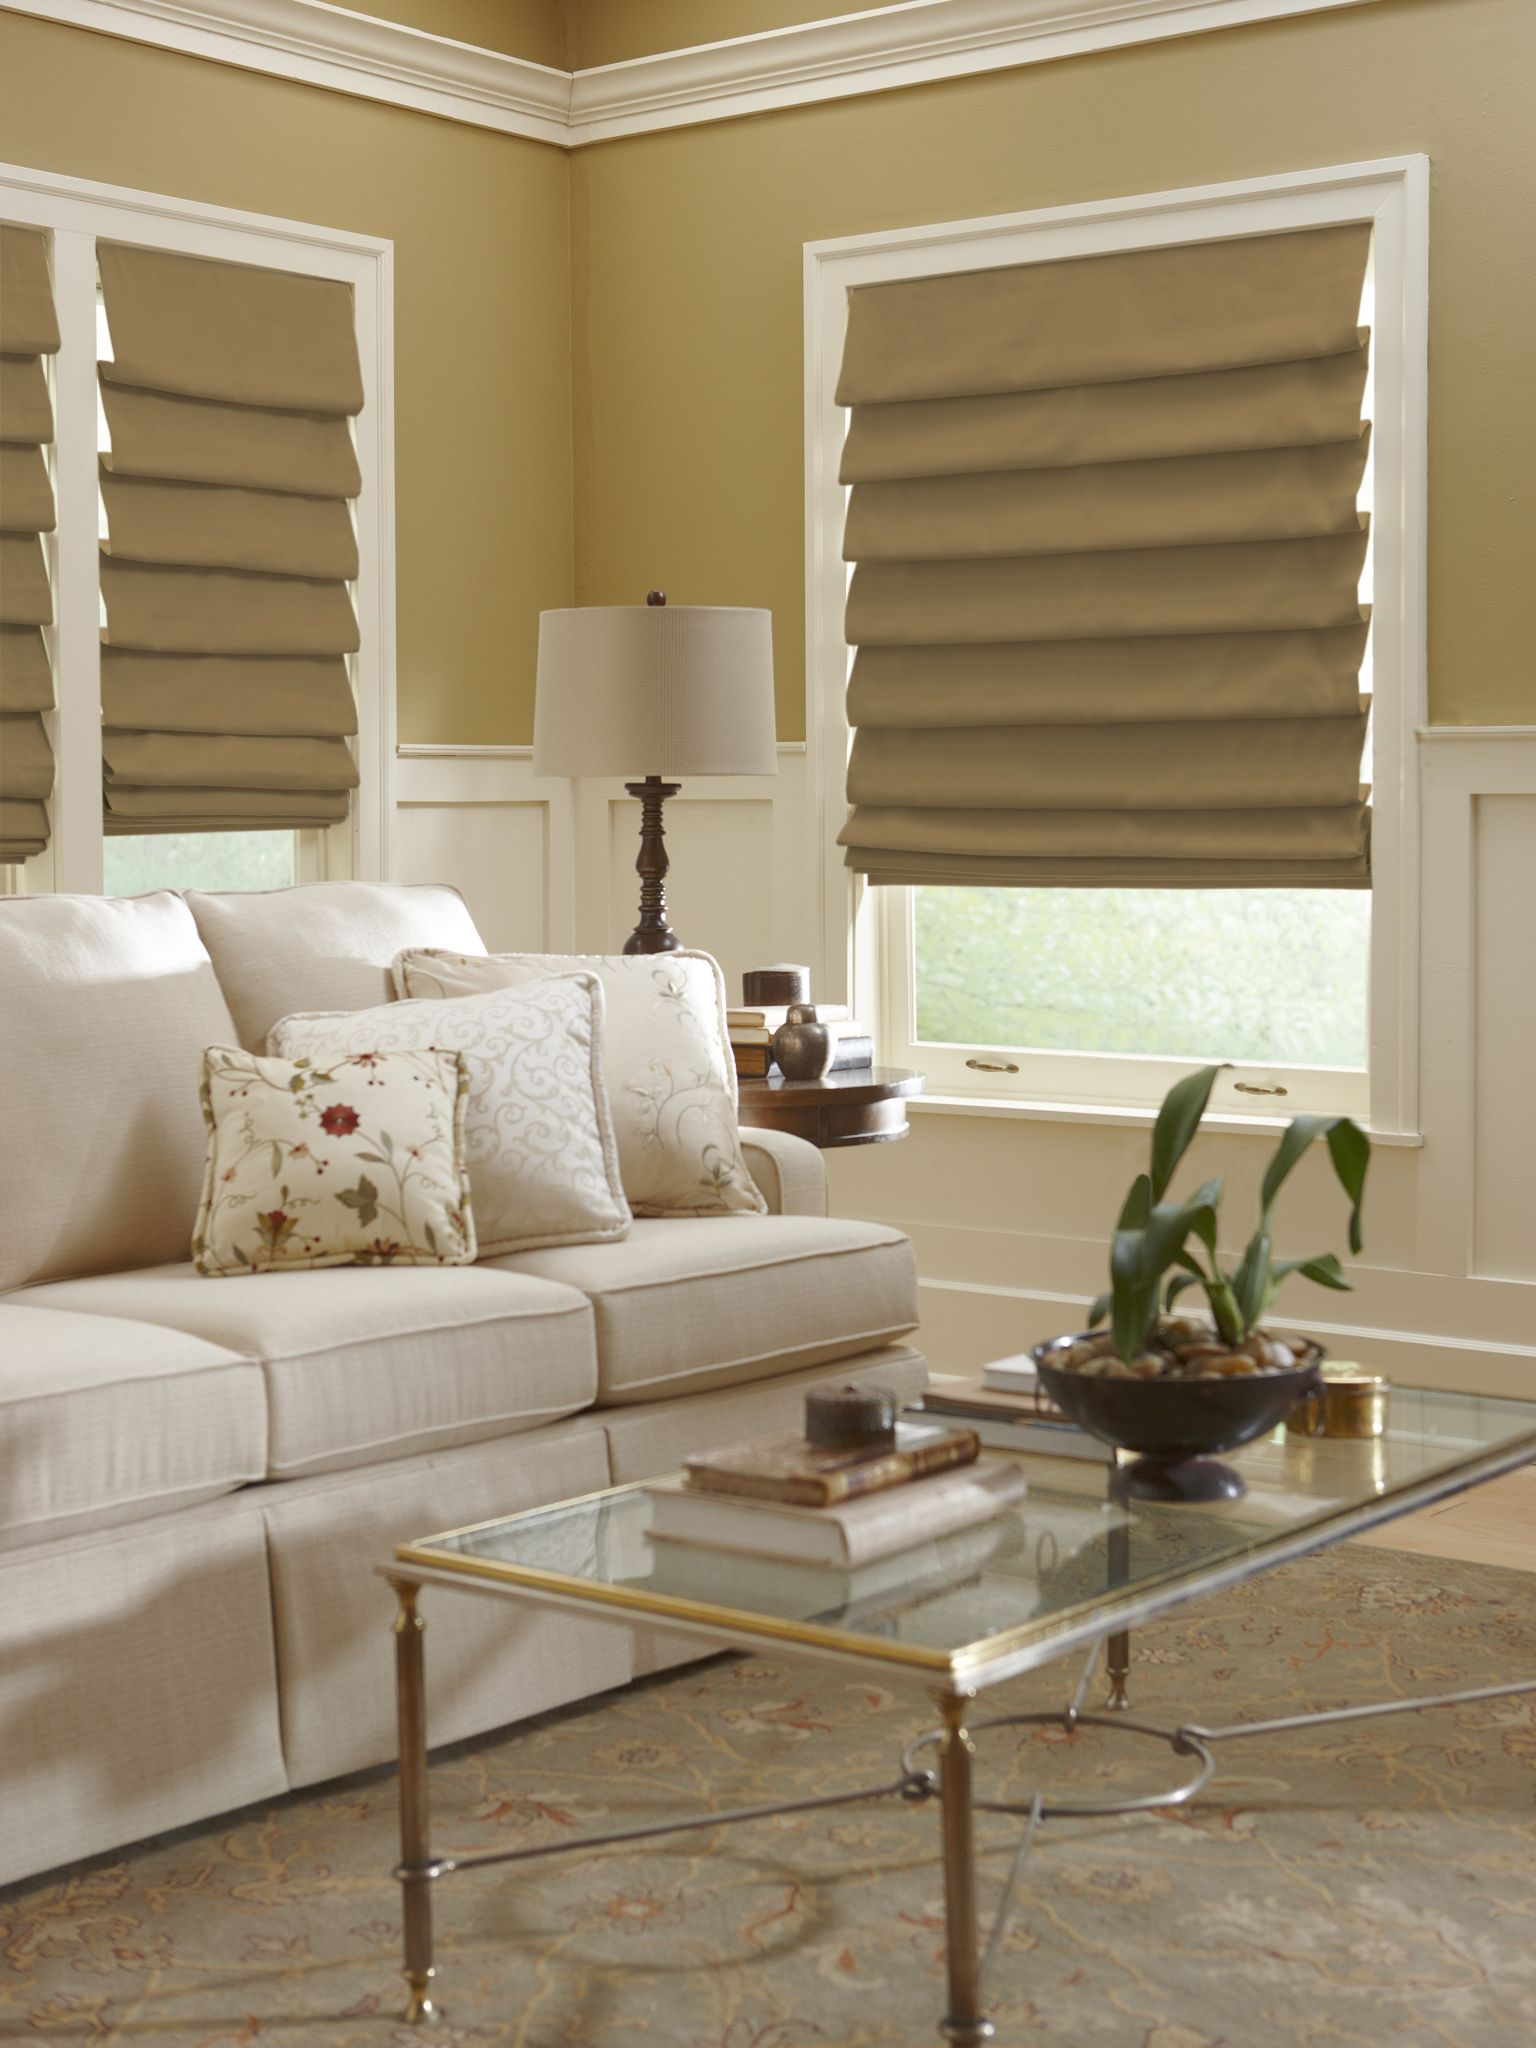 of by horizon a with available valance at horizons gorgeous natural clermont averte budget blinds double pin fold